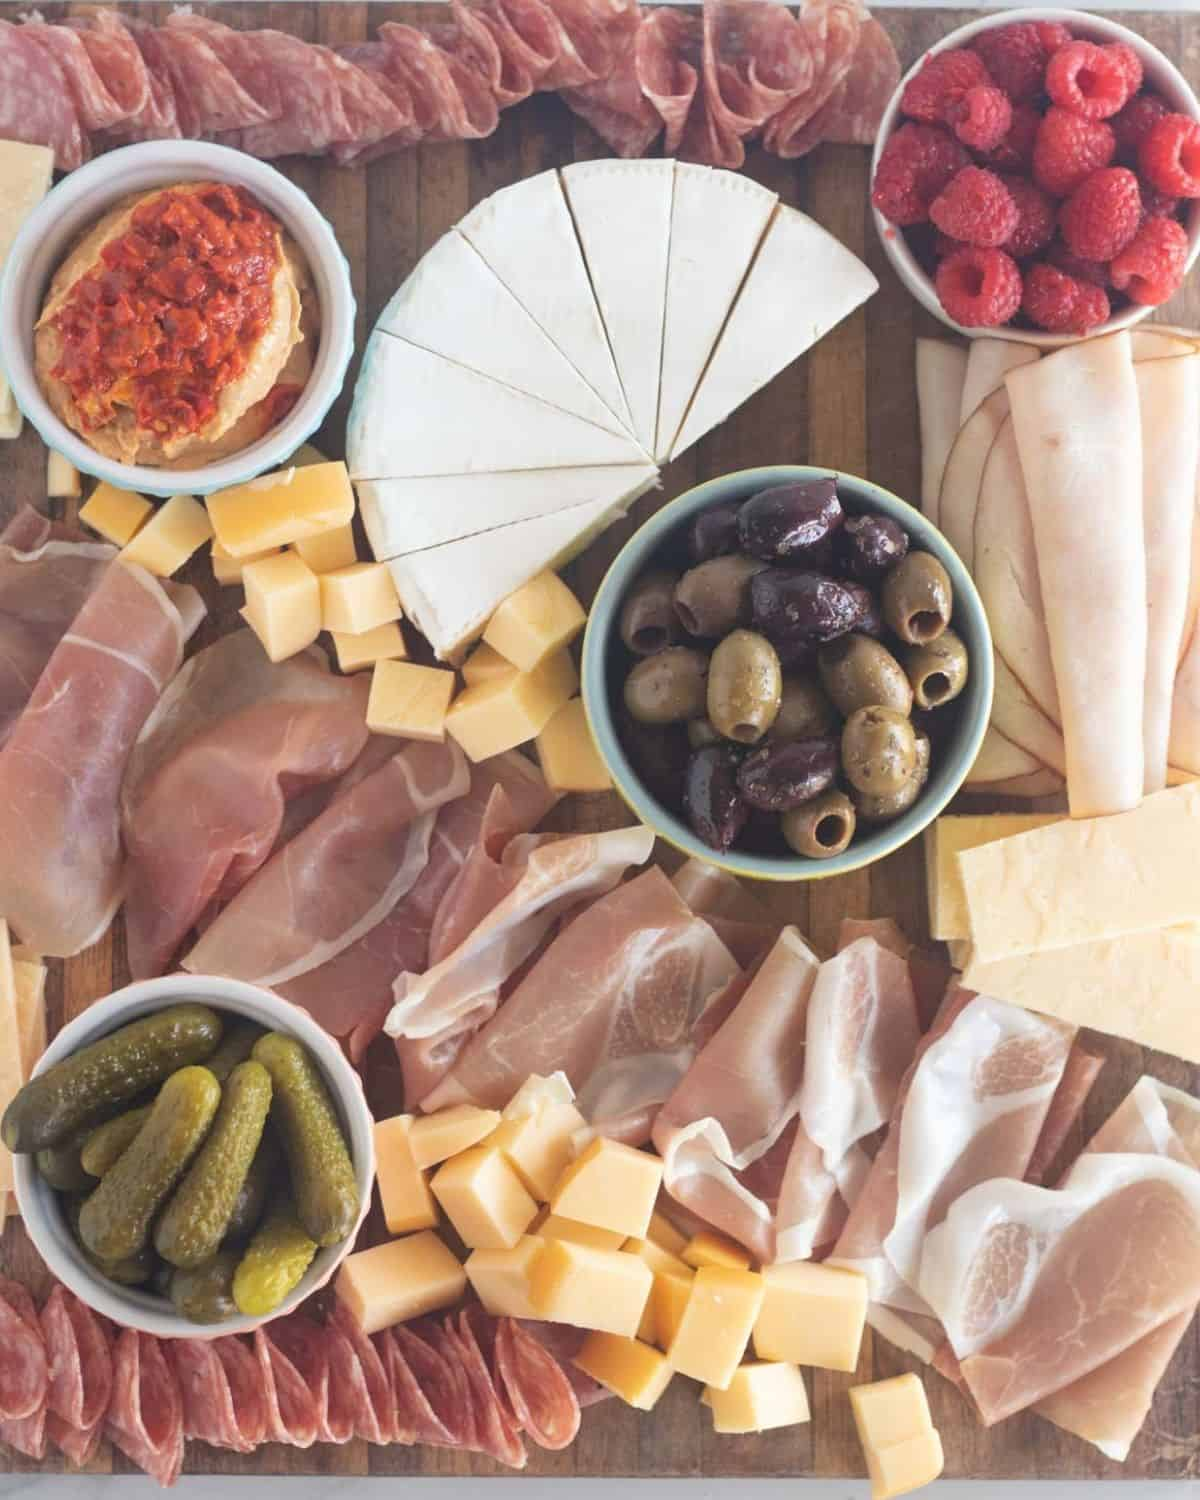 meats and cheeses arranged on board